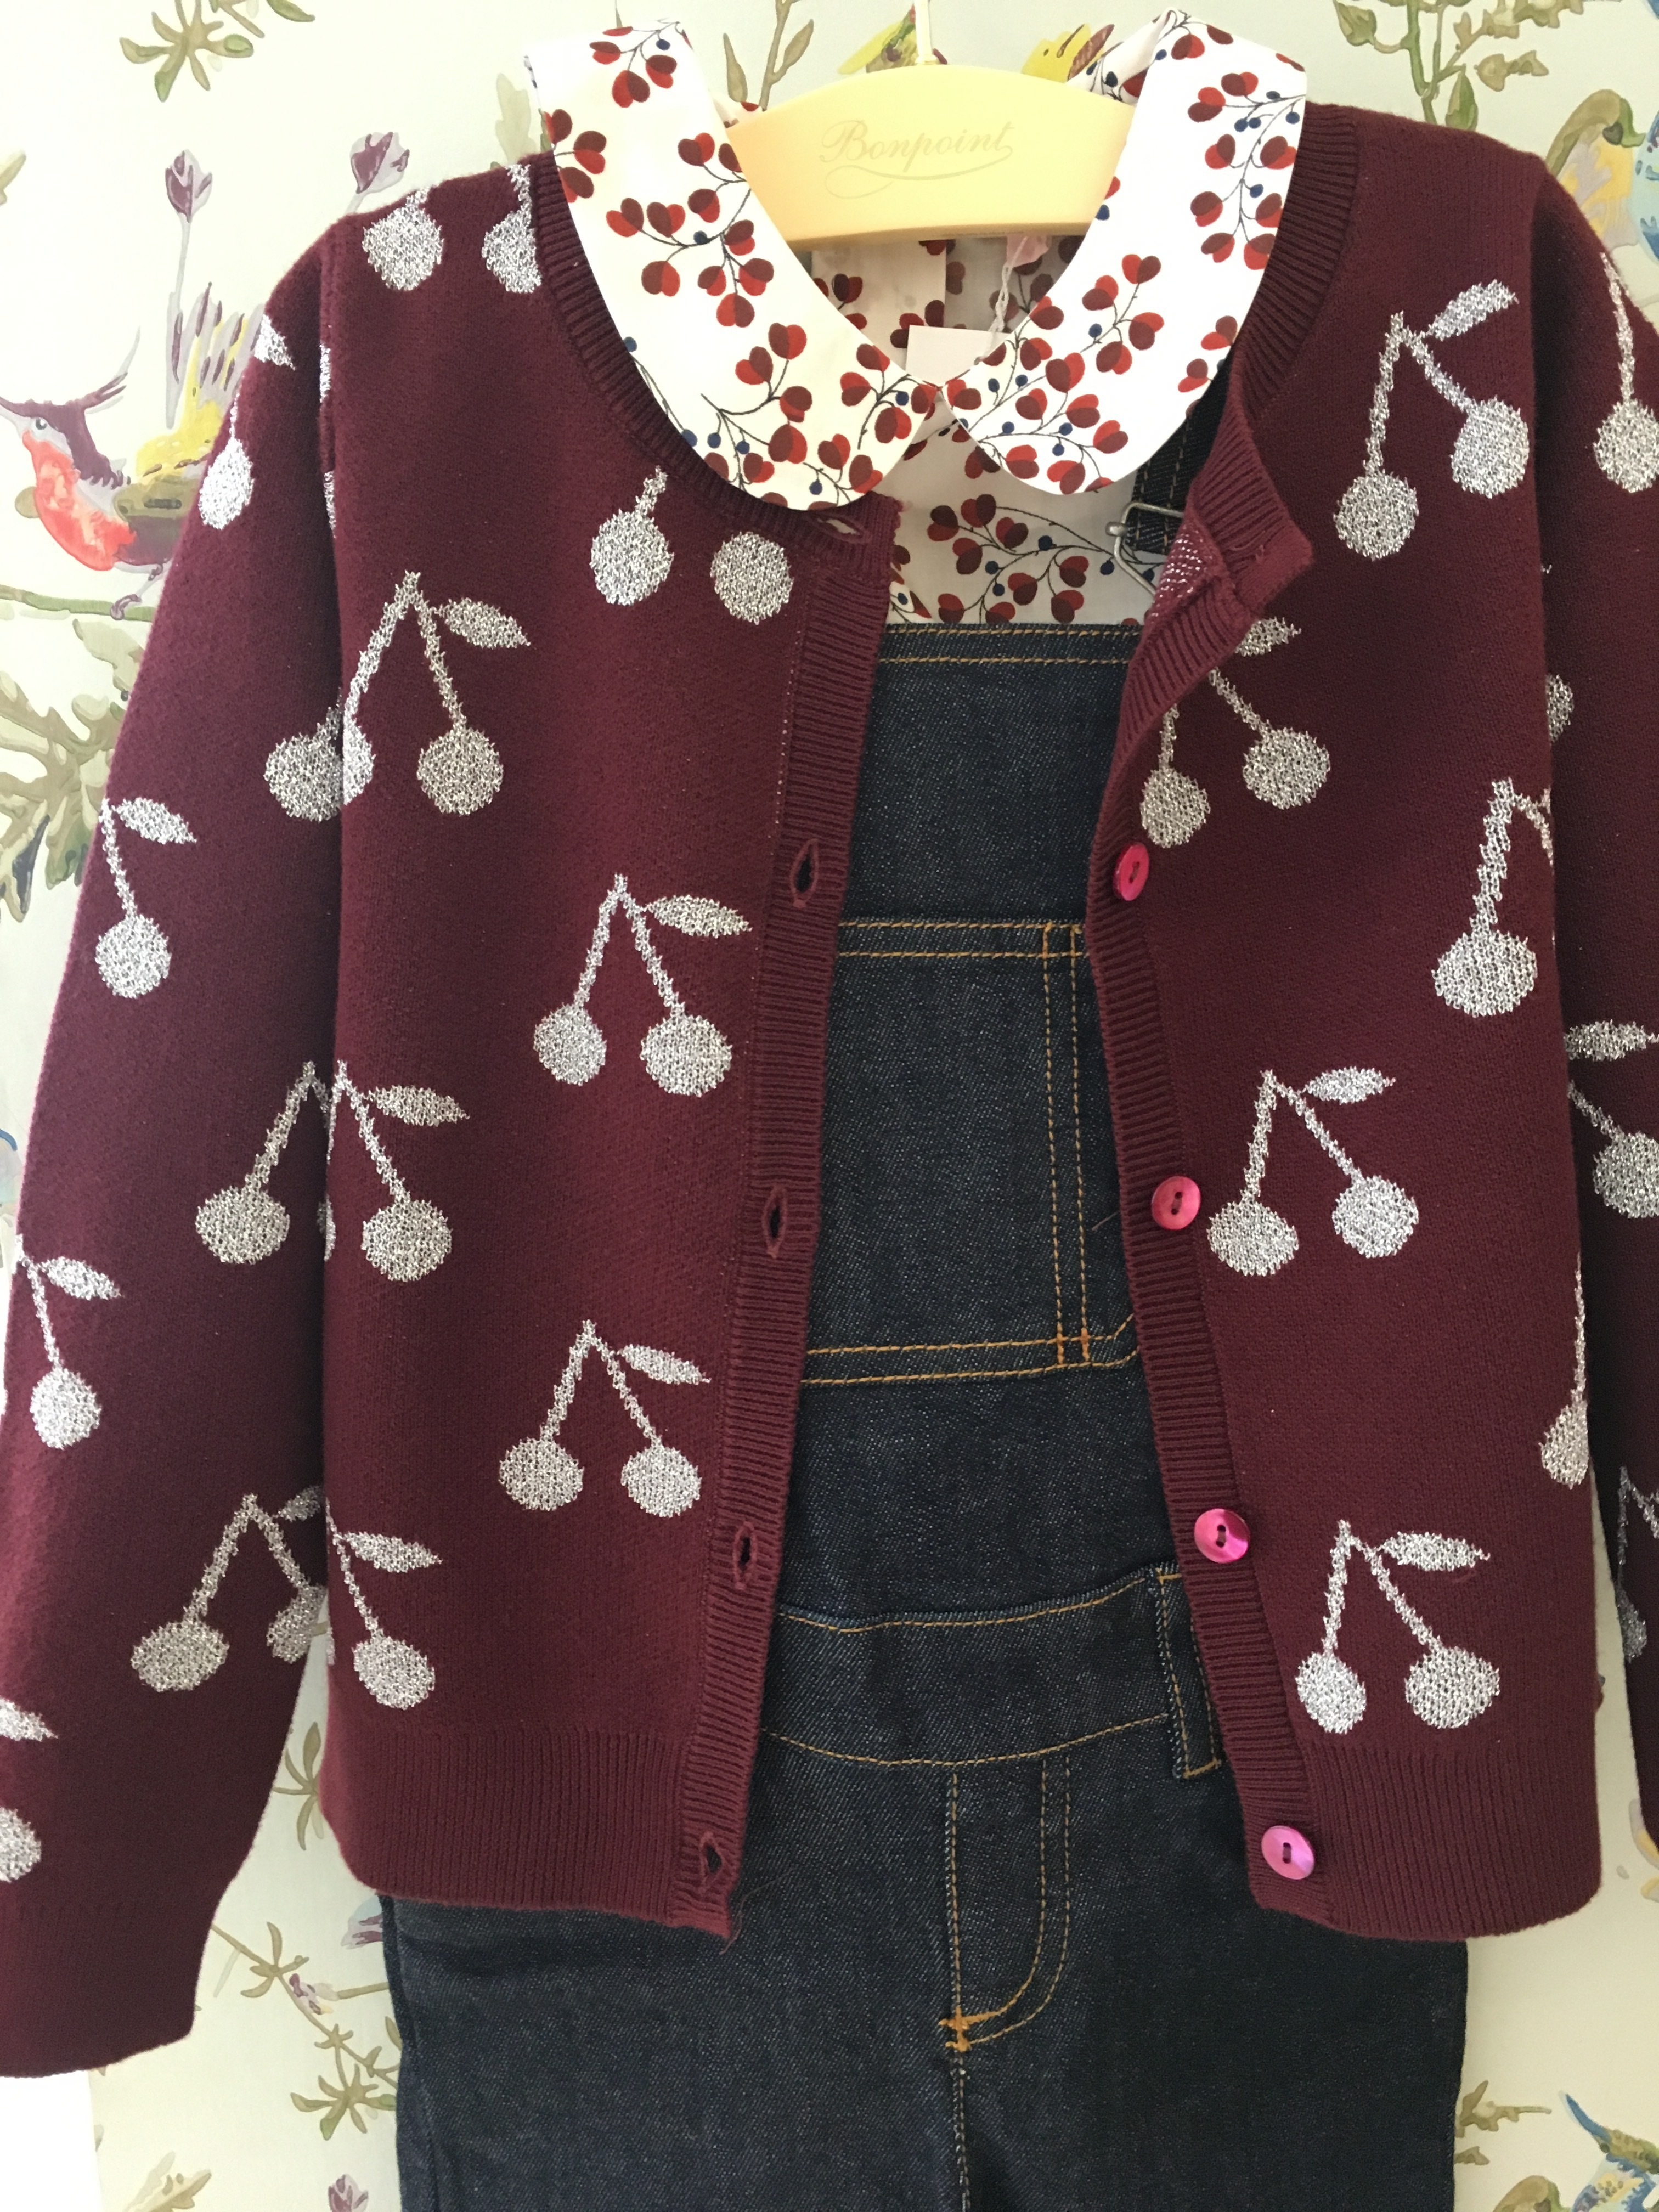 AW17☆FILLE カーディガン チェリー ボルドー 3.4.6A